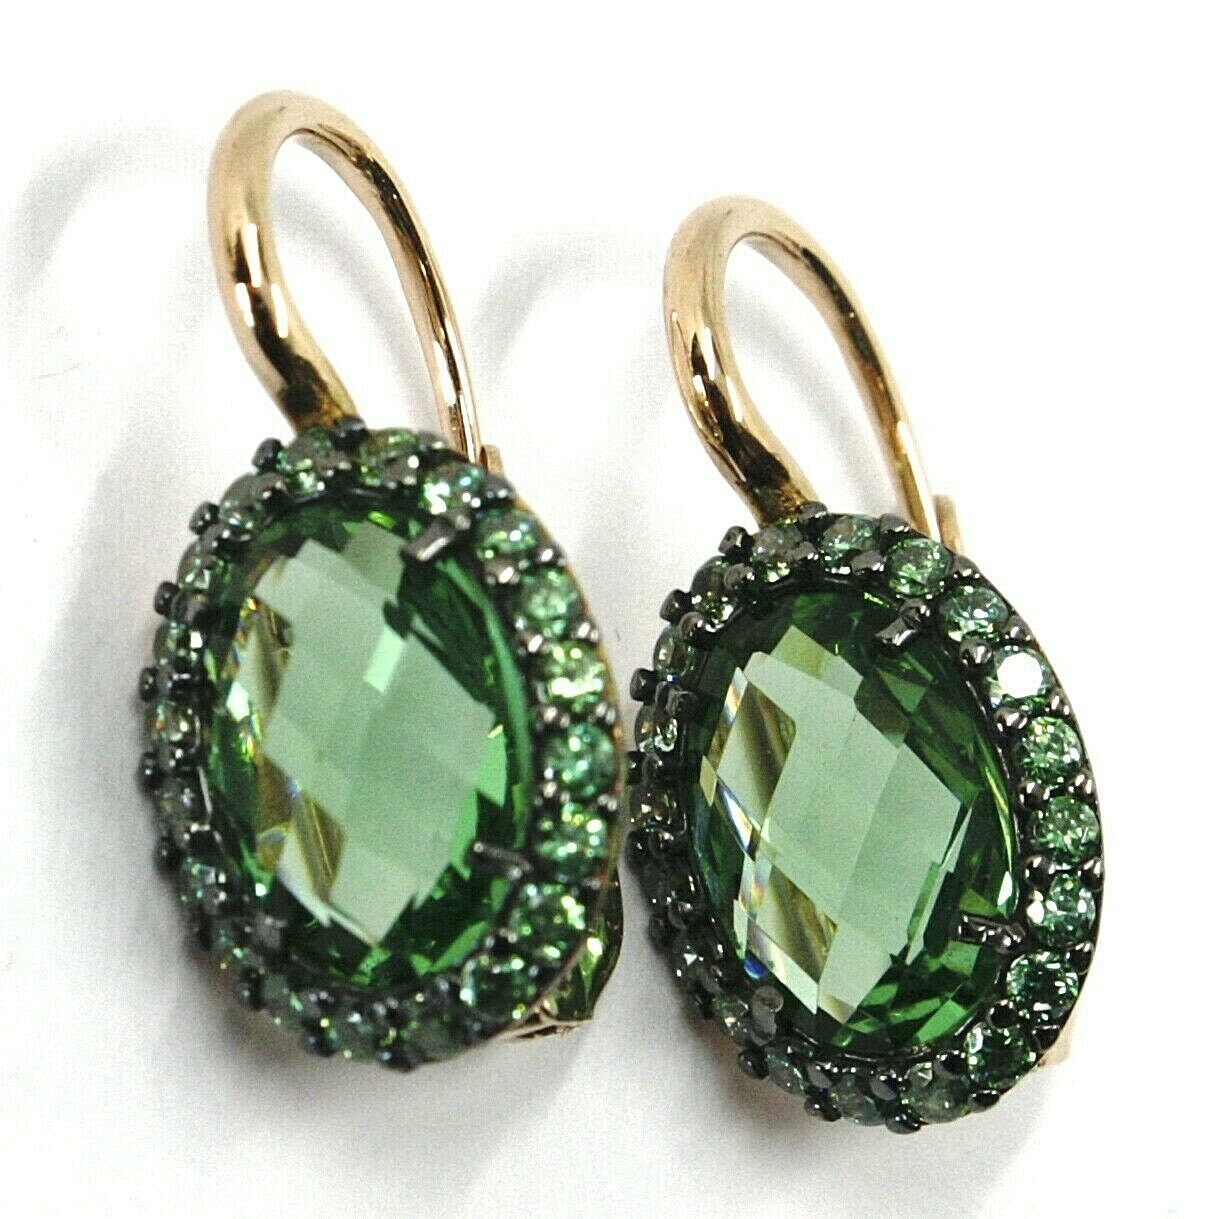 18K ROSE GOLD LEVERBACK FLOWER EARRINGS, OVAL GREEN CUBIC ZIRCONIA WITH FRAME